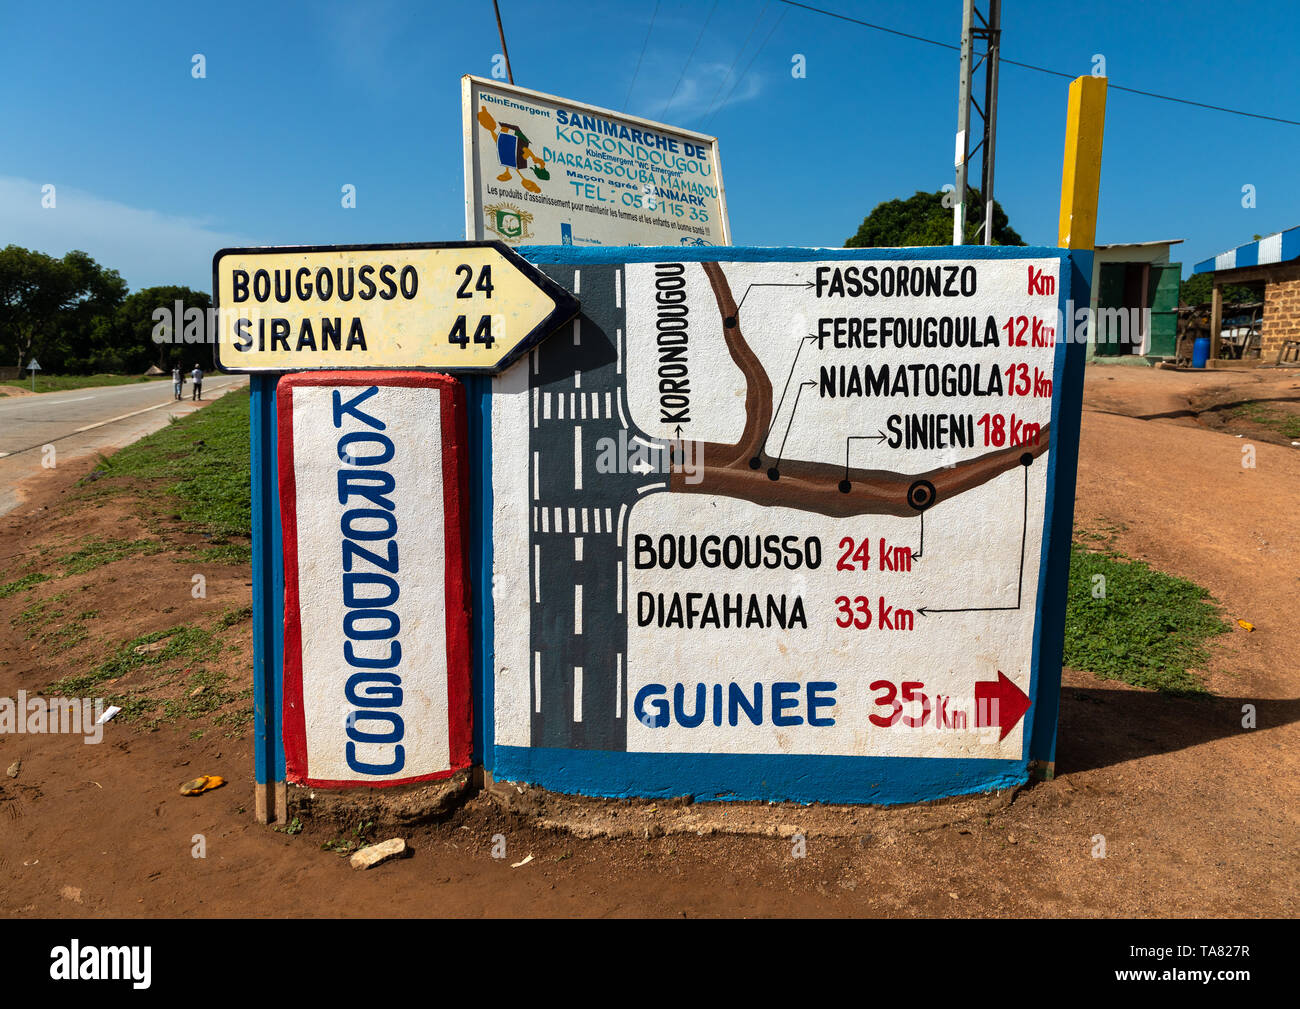 Arrows and signposts on the road, Denguélé, Korondougou, Ivory Coast Stock Photo